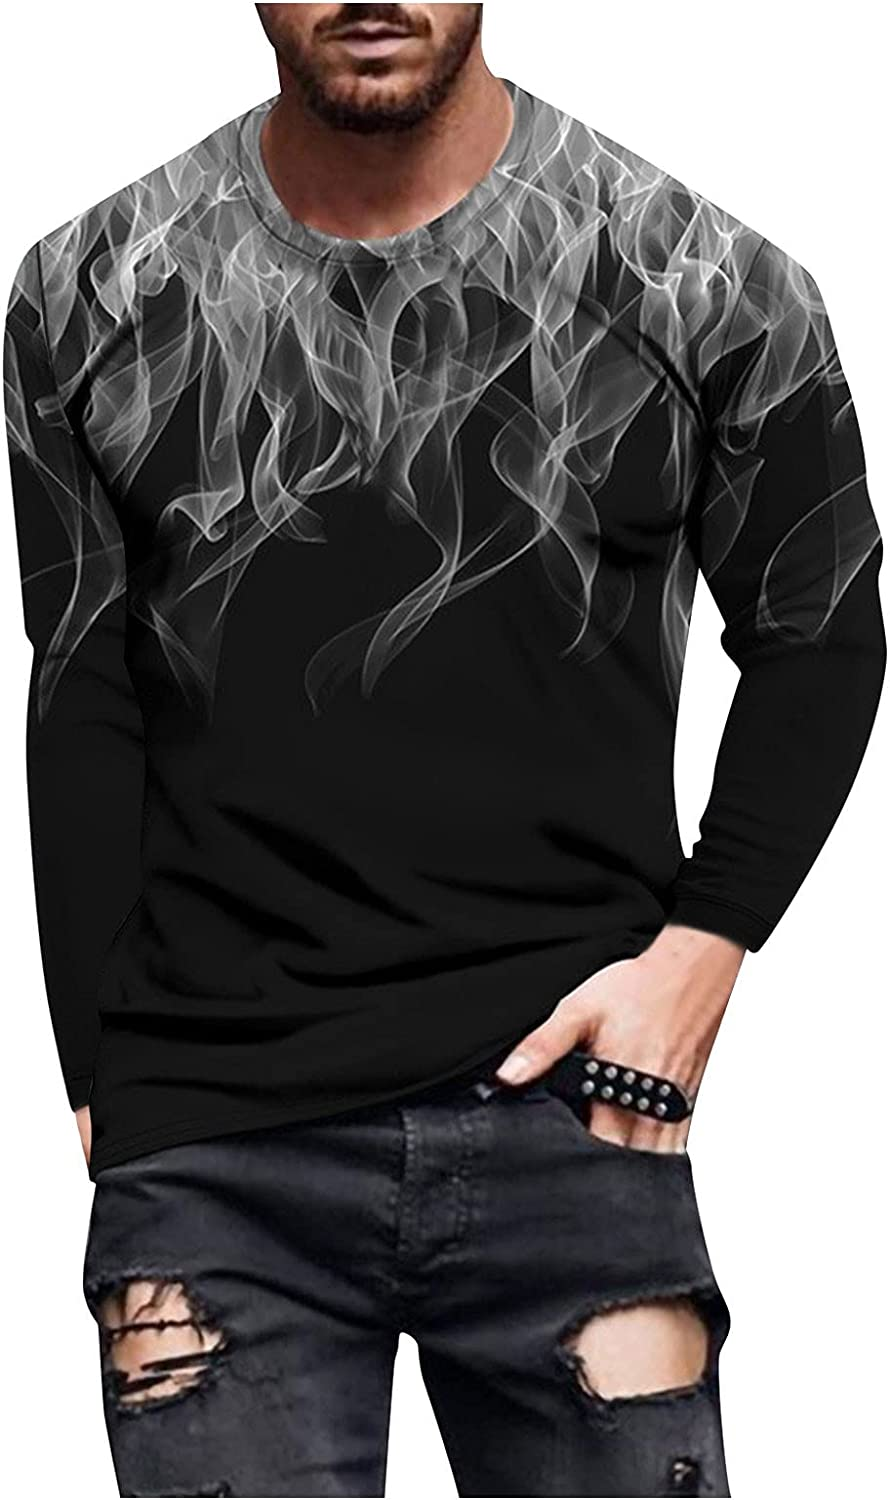 Aayomet Men's T Shirts Graphic Vintage Long Sleeve Slim Fit T-Shirt Casual Beach Sport Workout Athletic Tee Shirts Tops